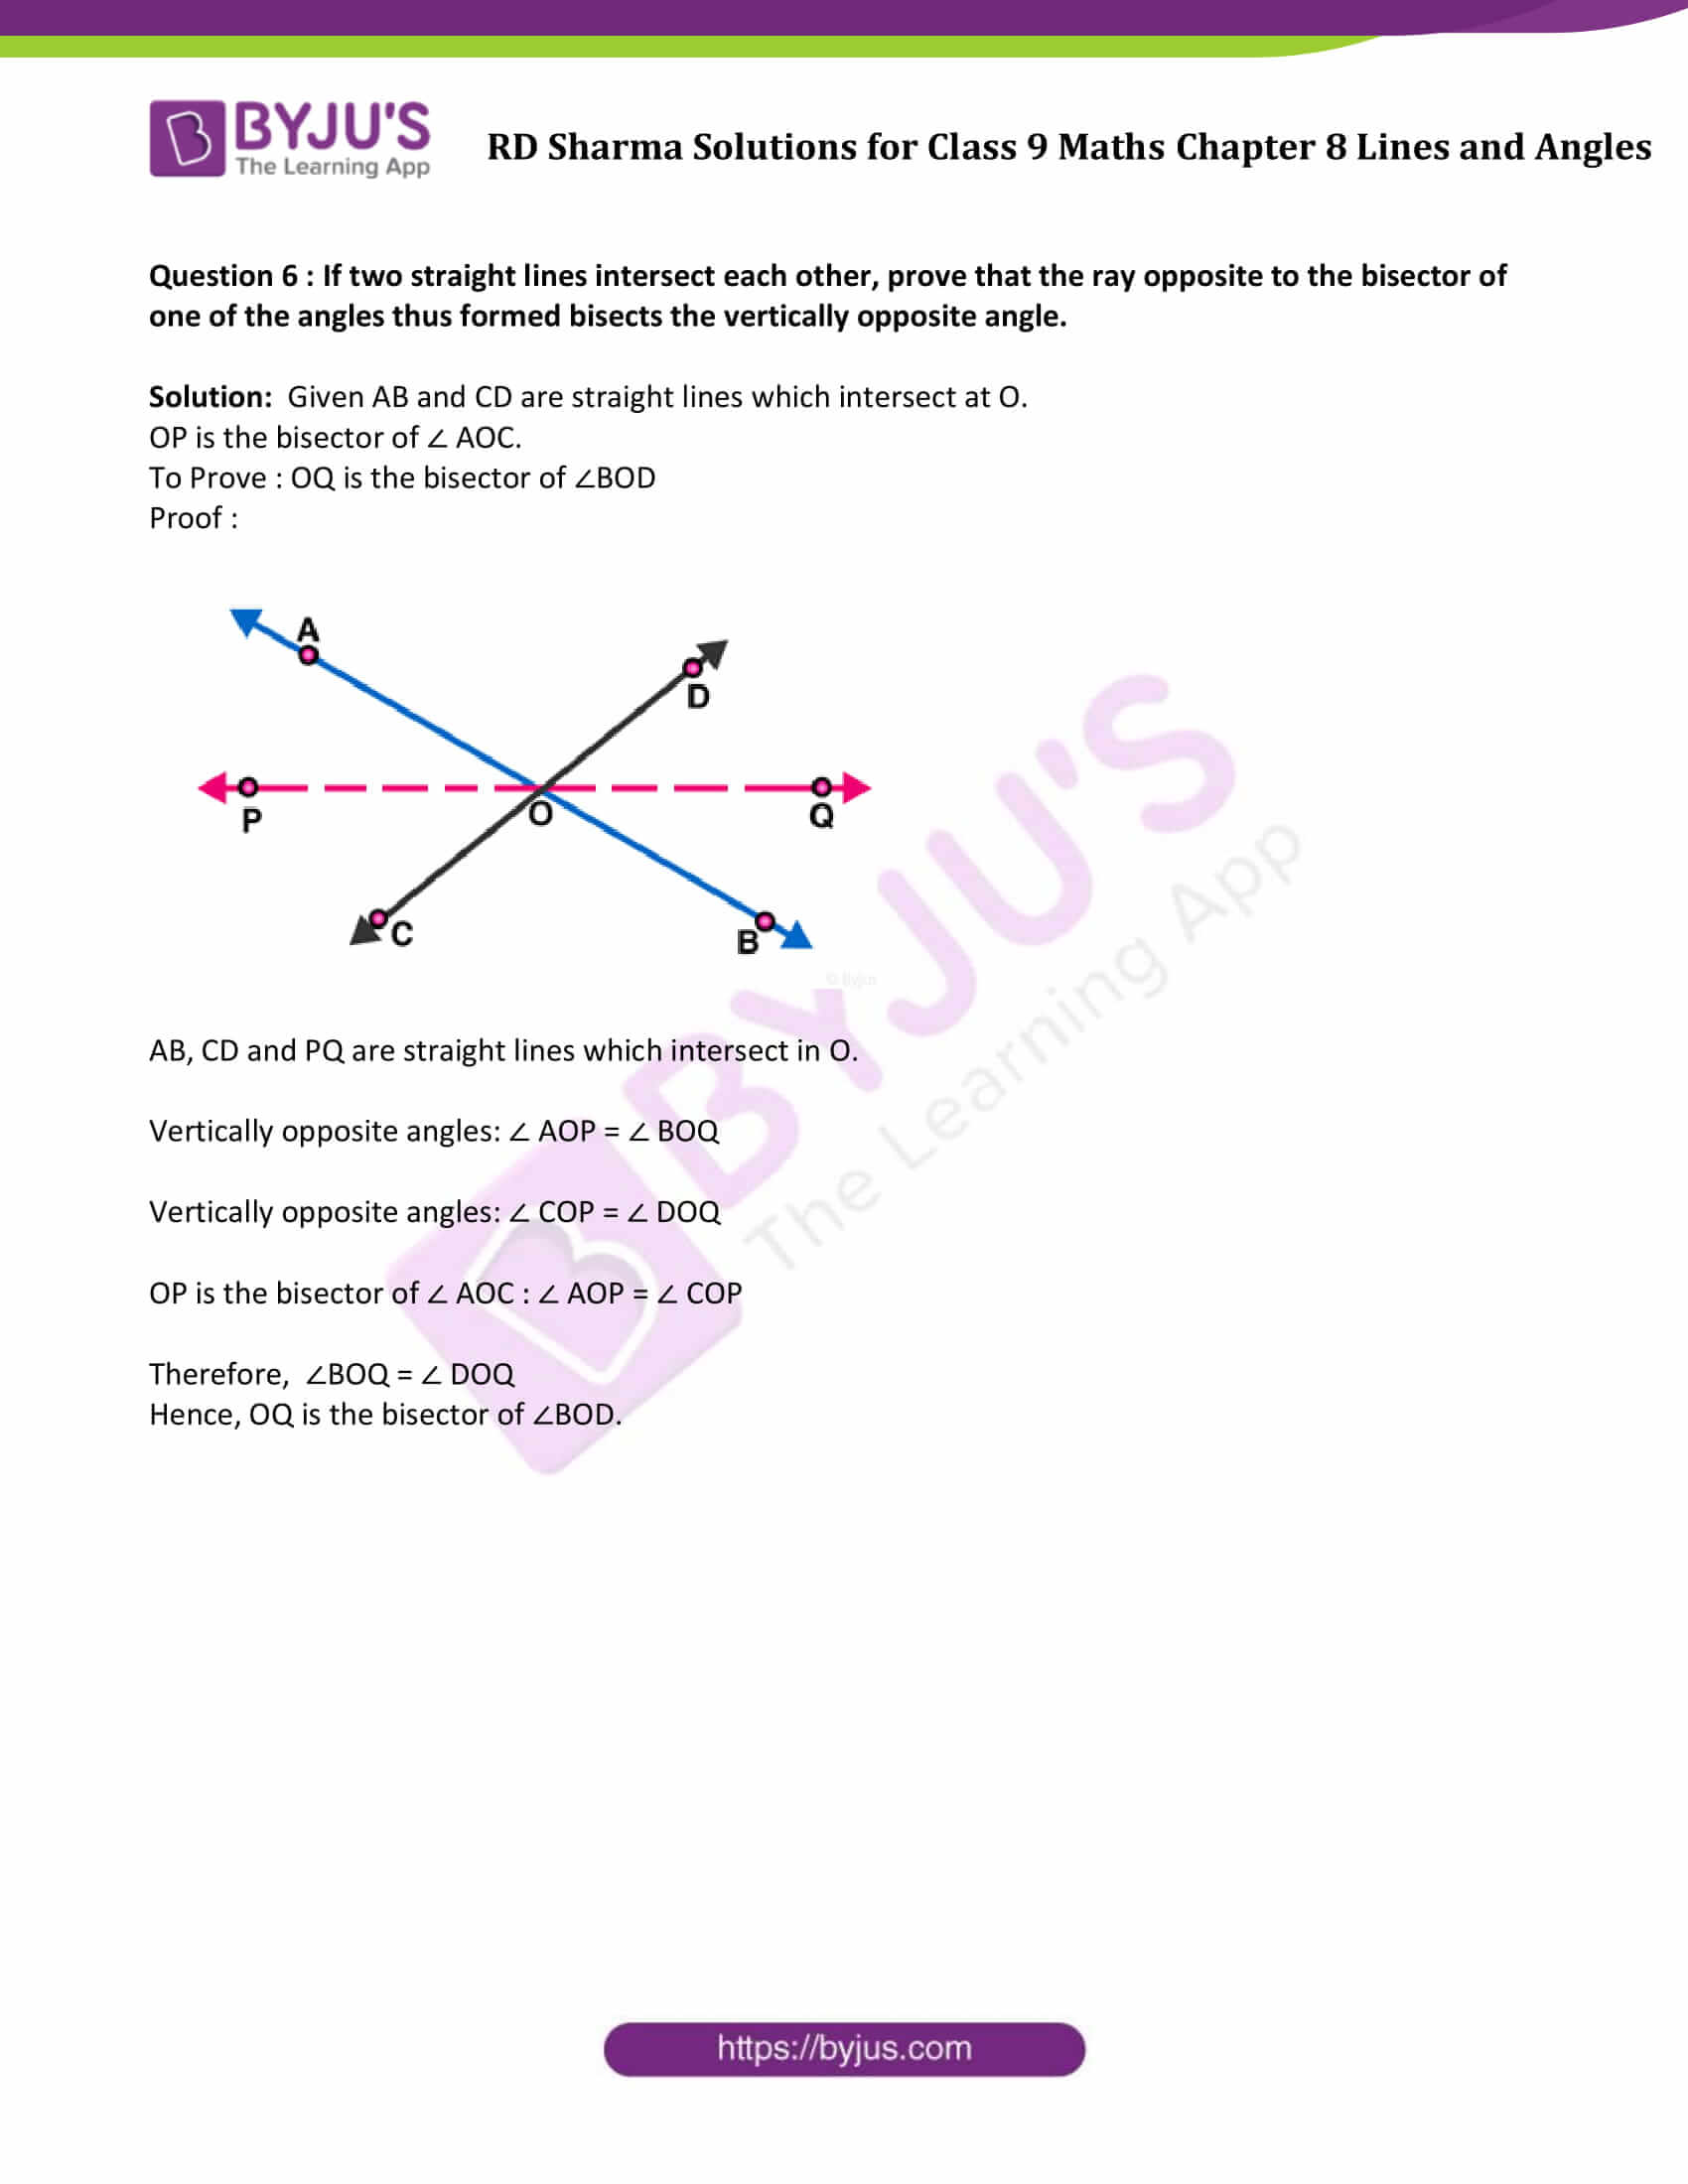 RD Sharma Solution class 9 Maths Chapter 8 Lines and Angles 15